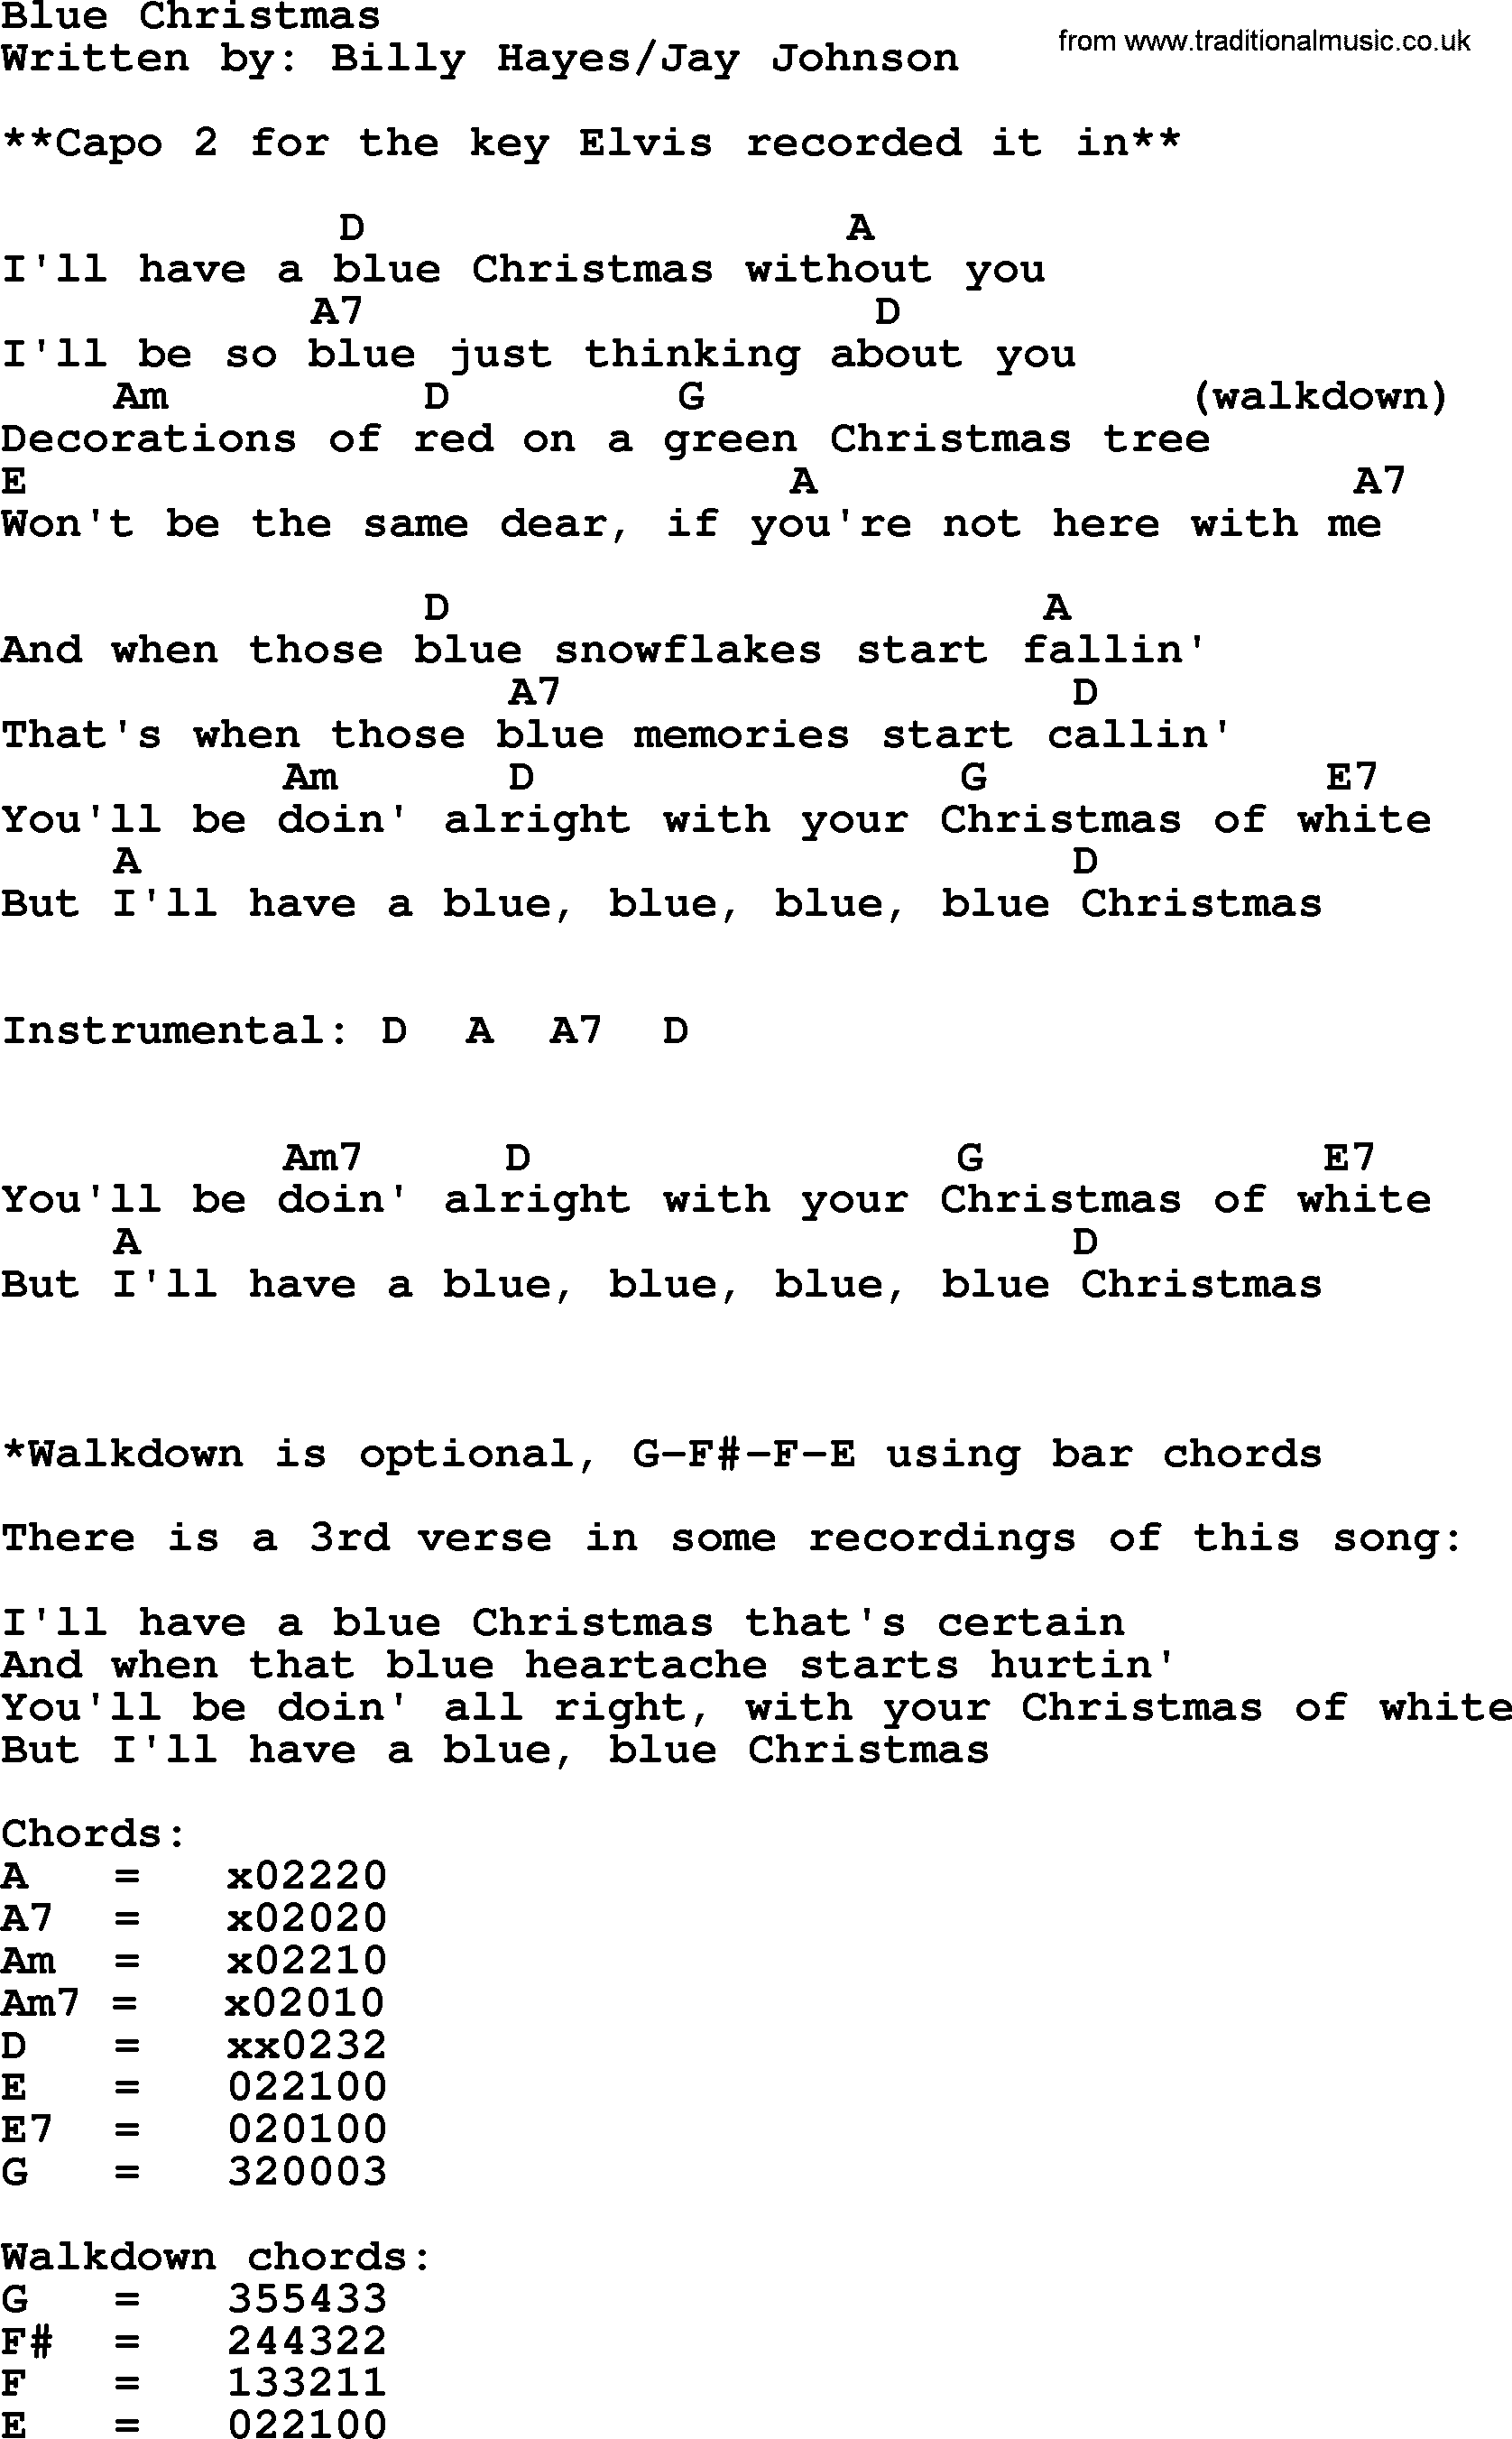 elvis presley song blue christmas lyrics and chords - I Ll Have A Blue Christmas Lyrics